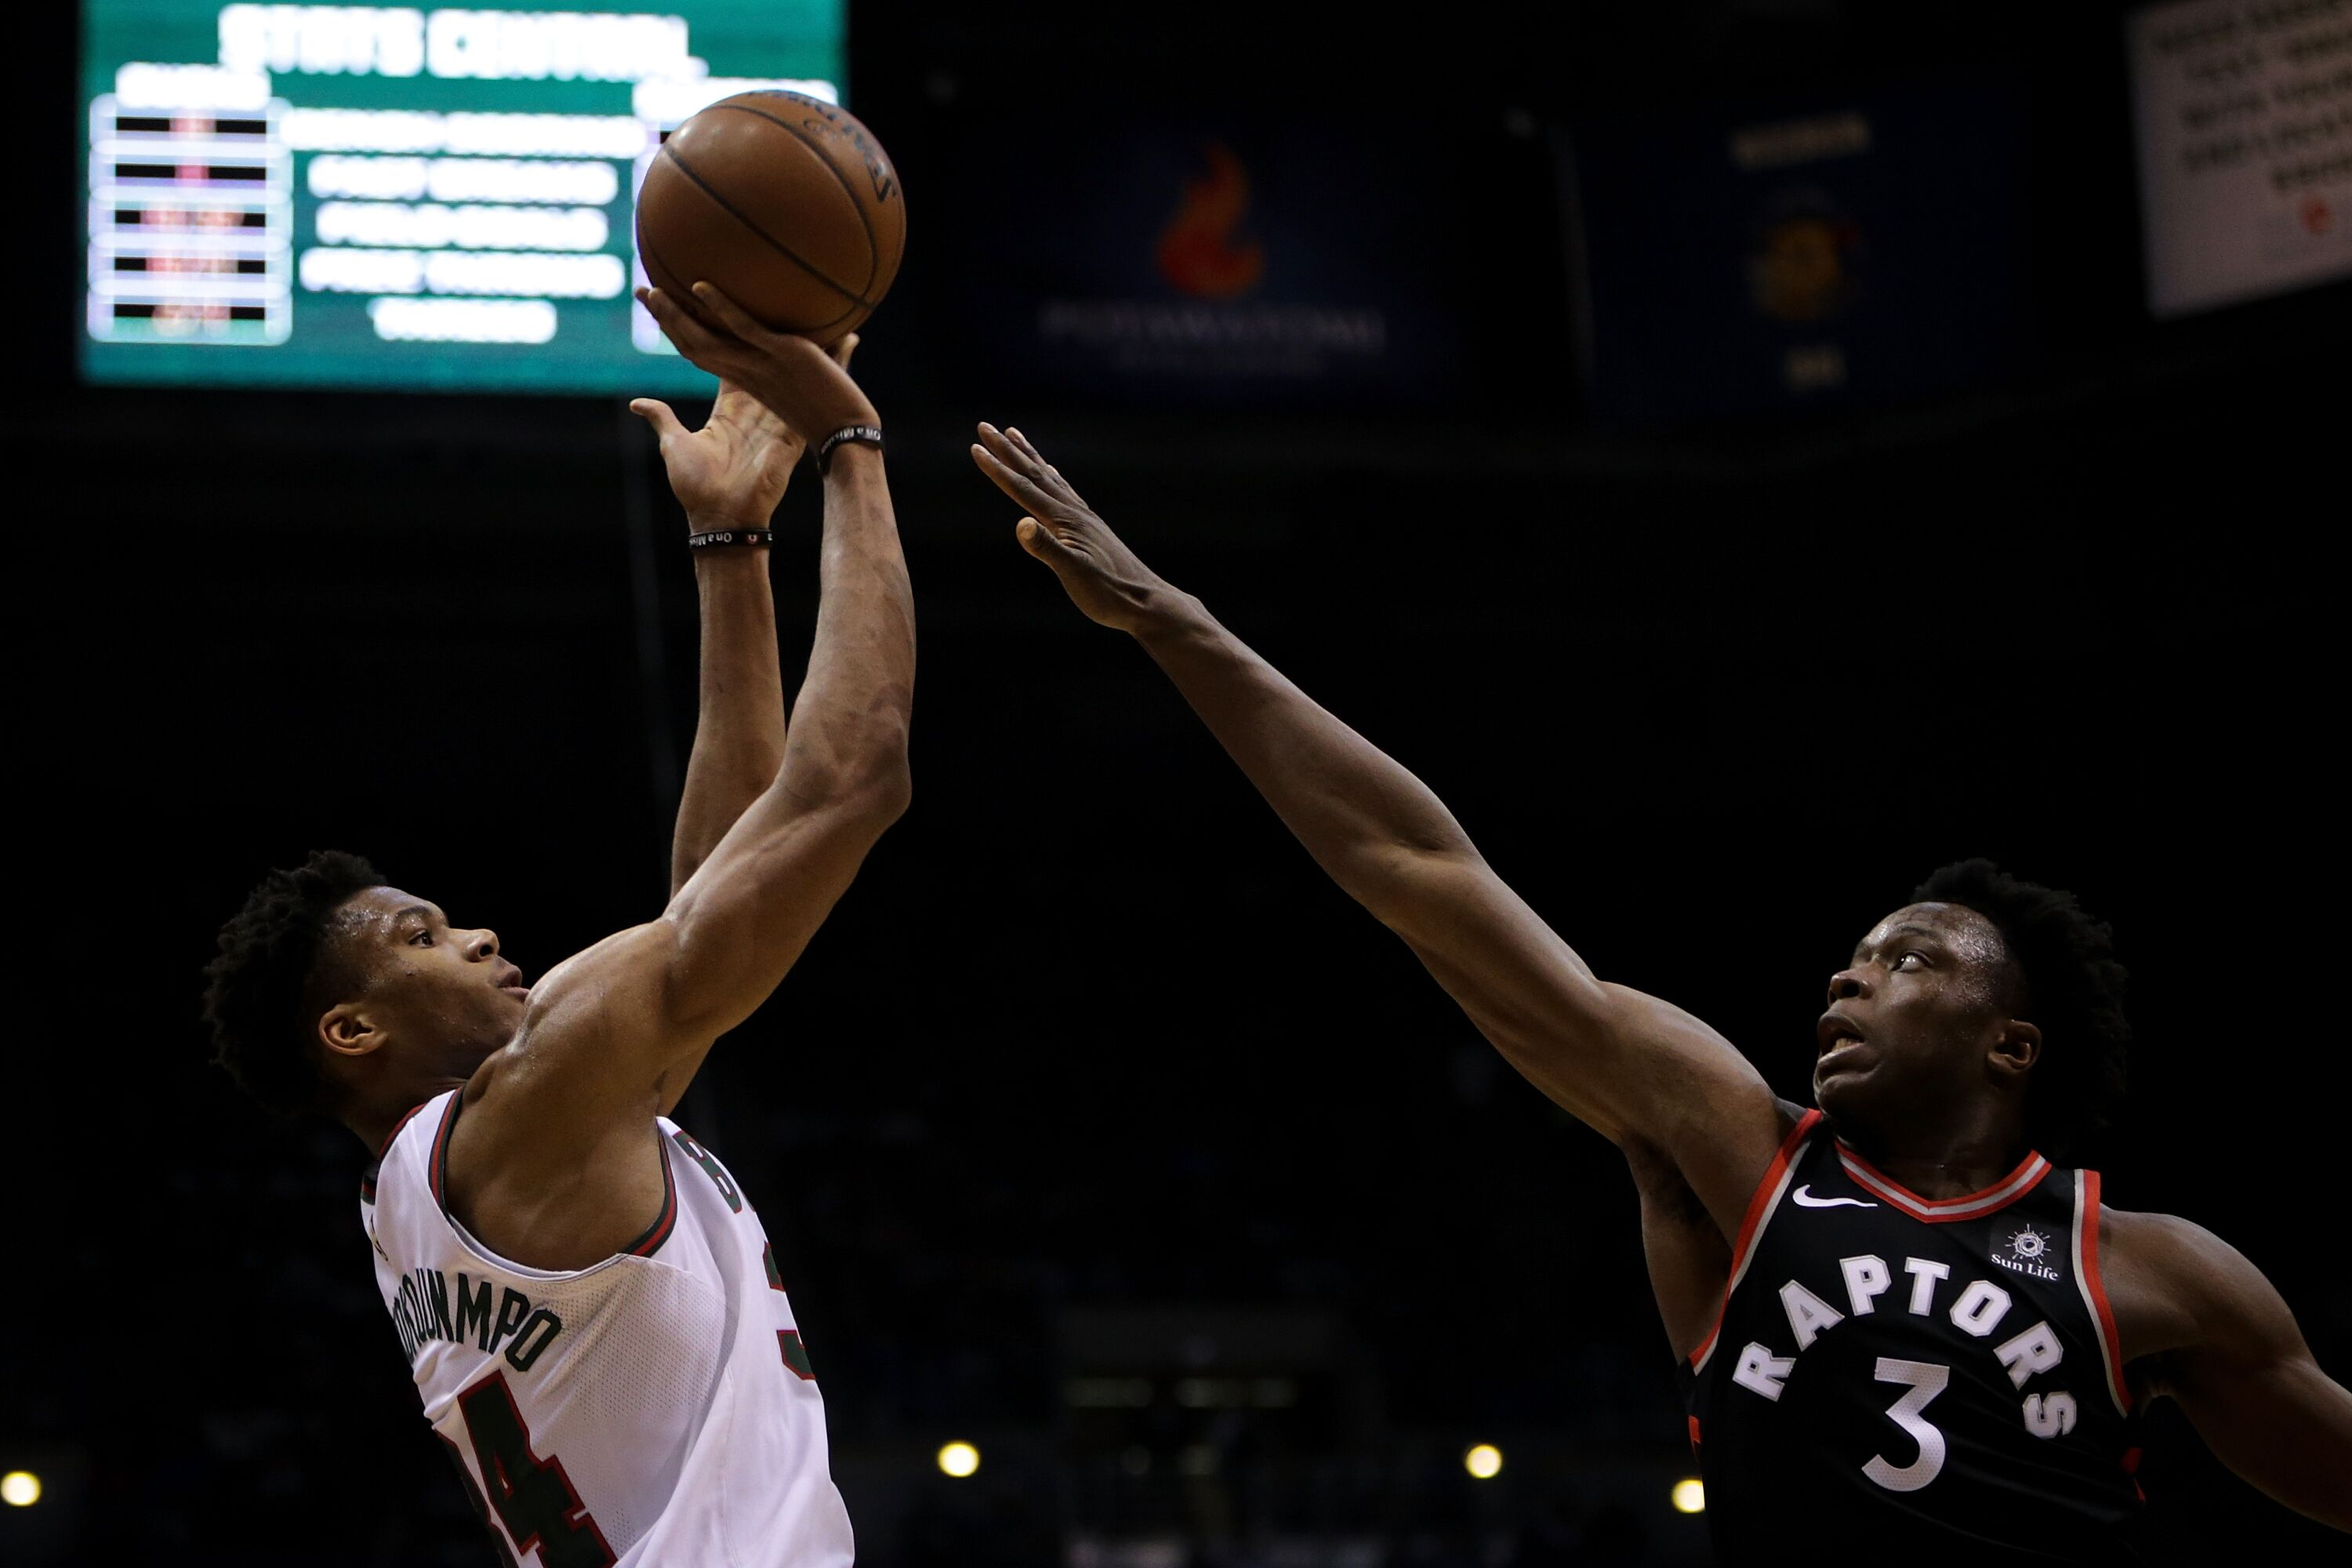 902247840-toronto-raptors-v-milwaukee-bucks.jpg